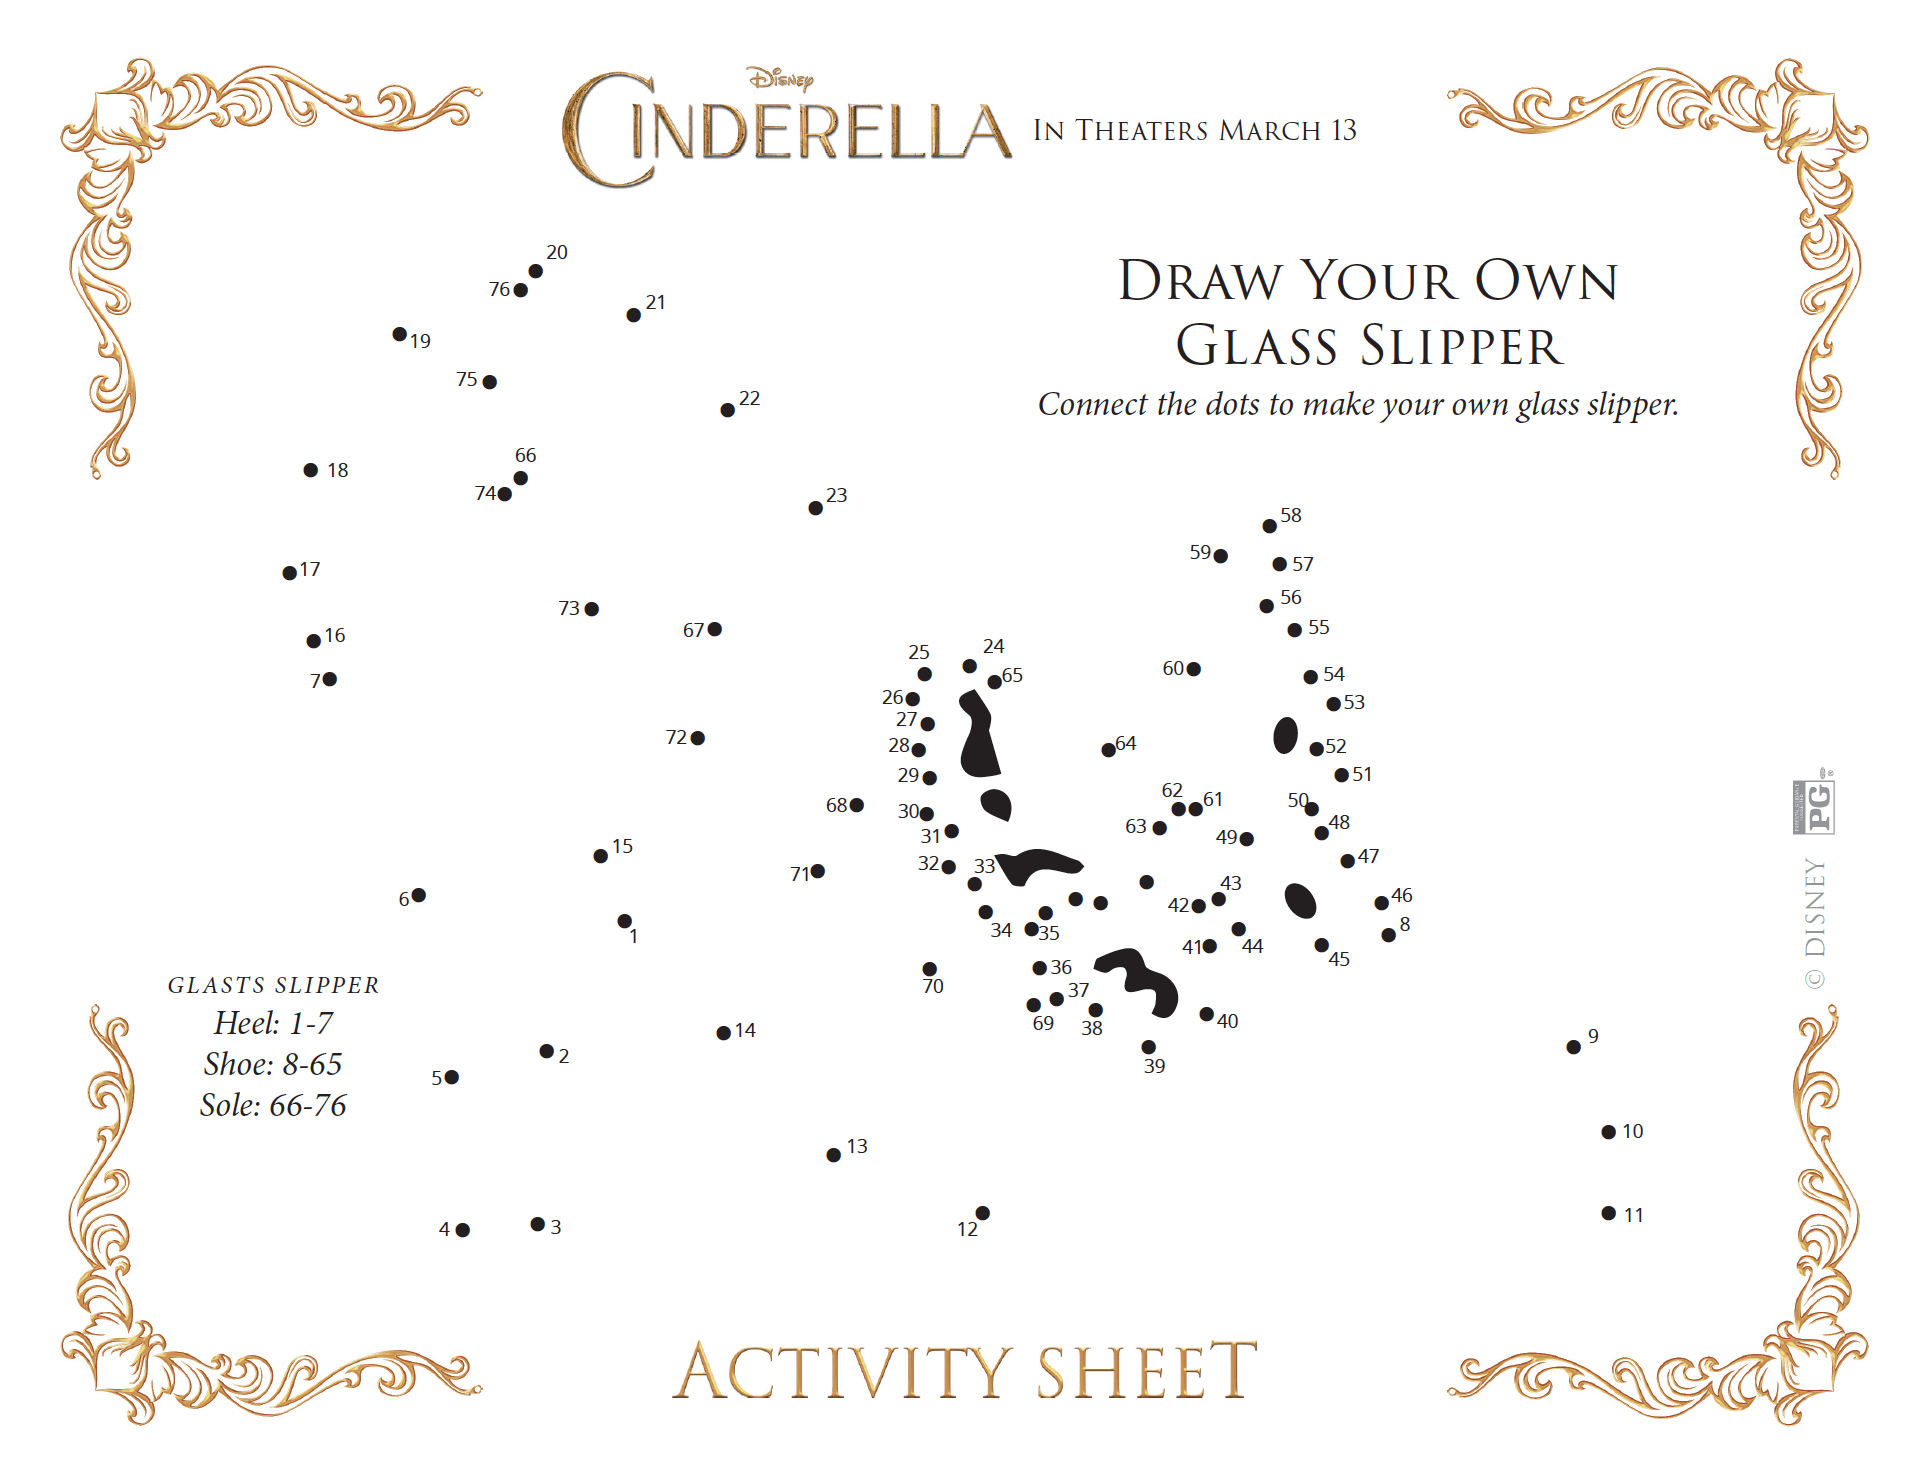 Cinderella Draw Your Glass Slipper